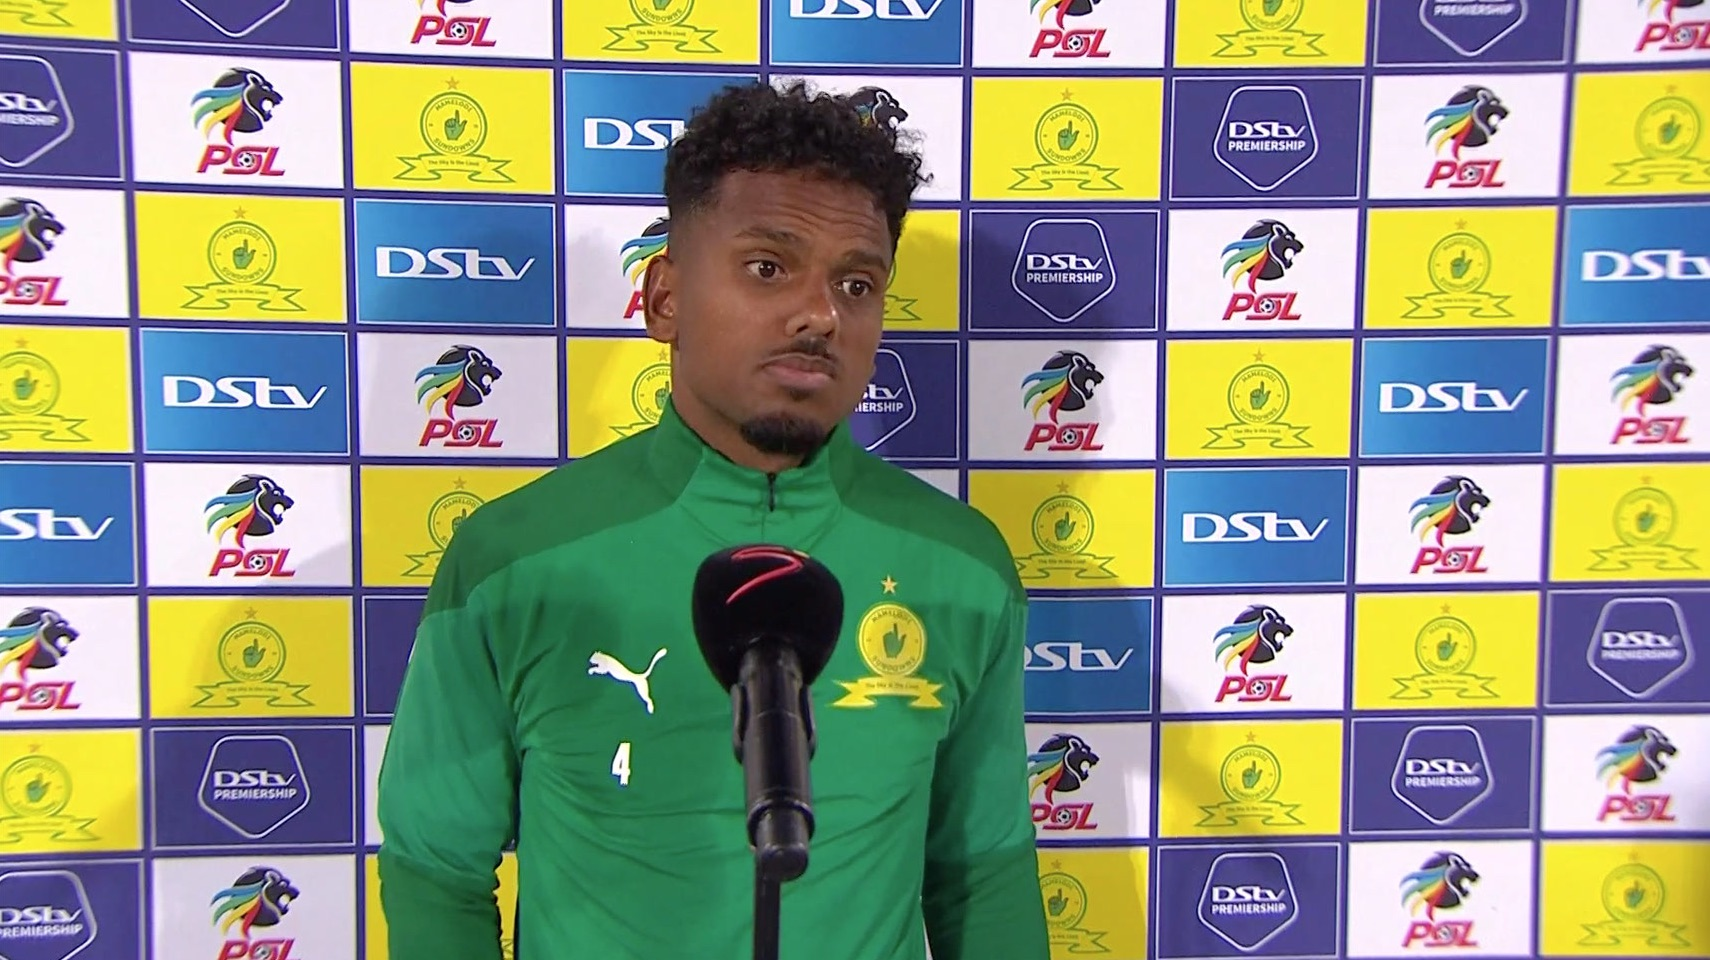 DStv Premiership | Mamelodi Sundowns v Stellenbosch FC  | Interview with Kermit and Manqoba